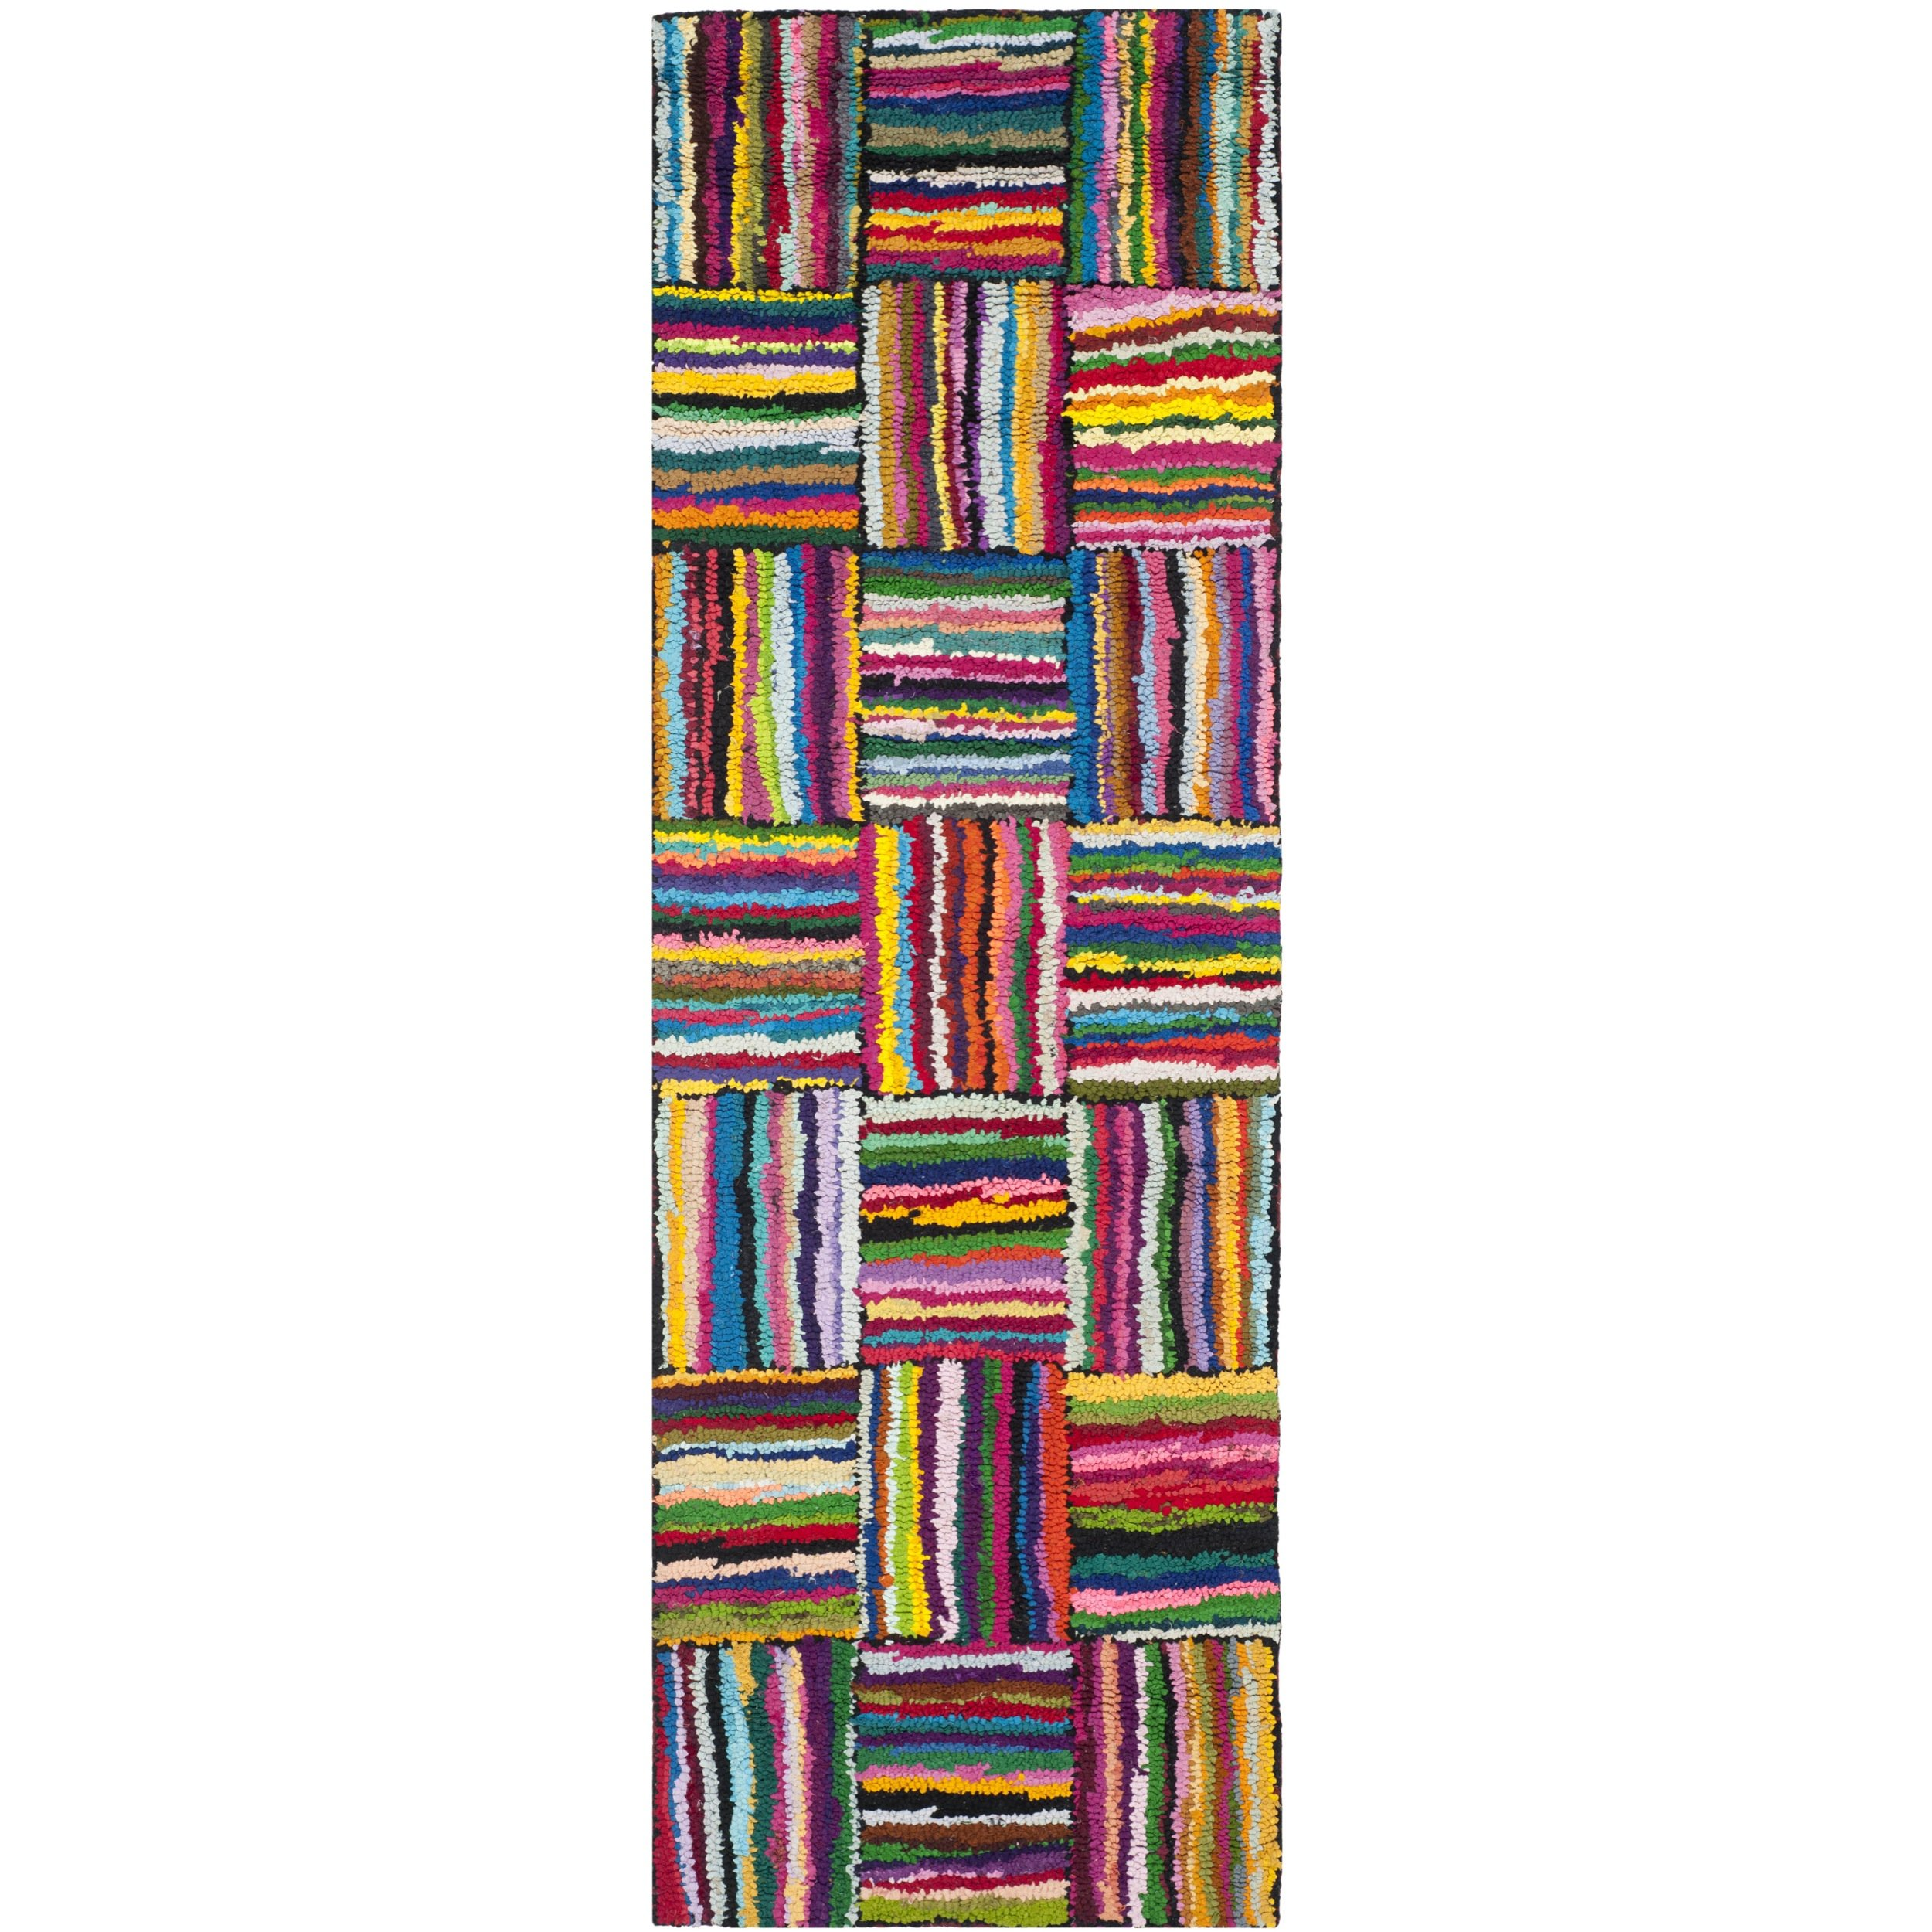 Safavieh Nantucket Collection NAN318A Handmade Abstract Multicolored Cotton Runner Rug (2'3'' x 13') by Safavieh